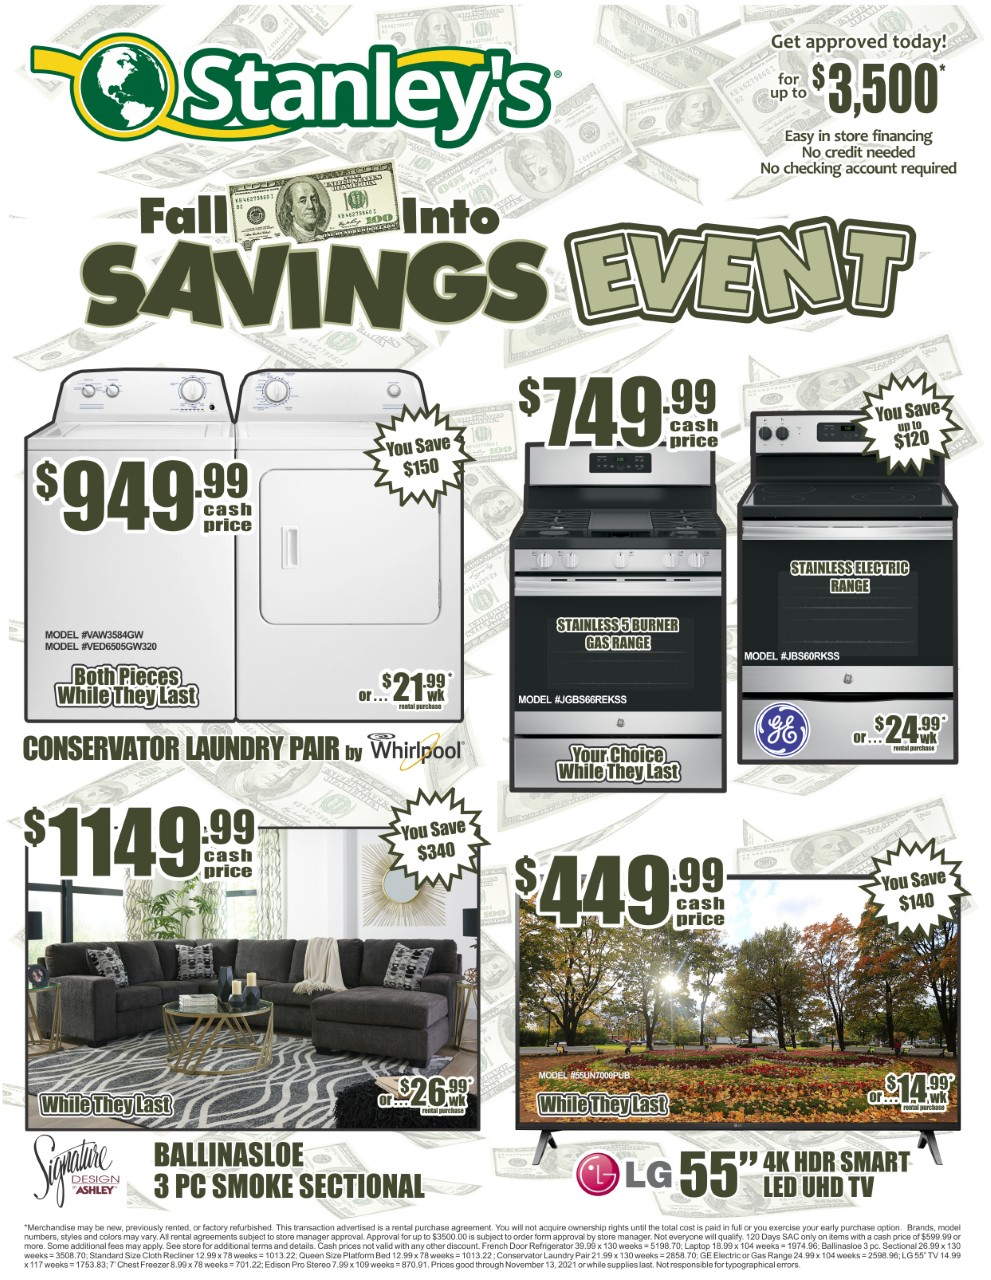 2021 - Fall into Savings - facebook front page